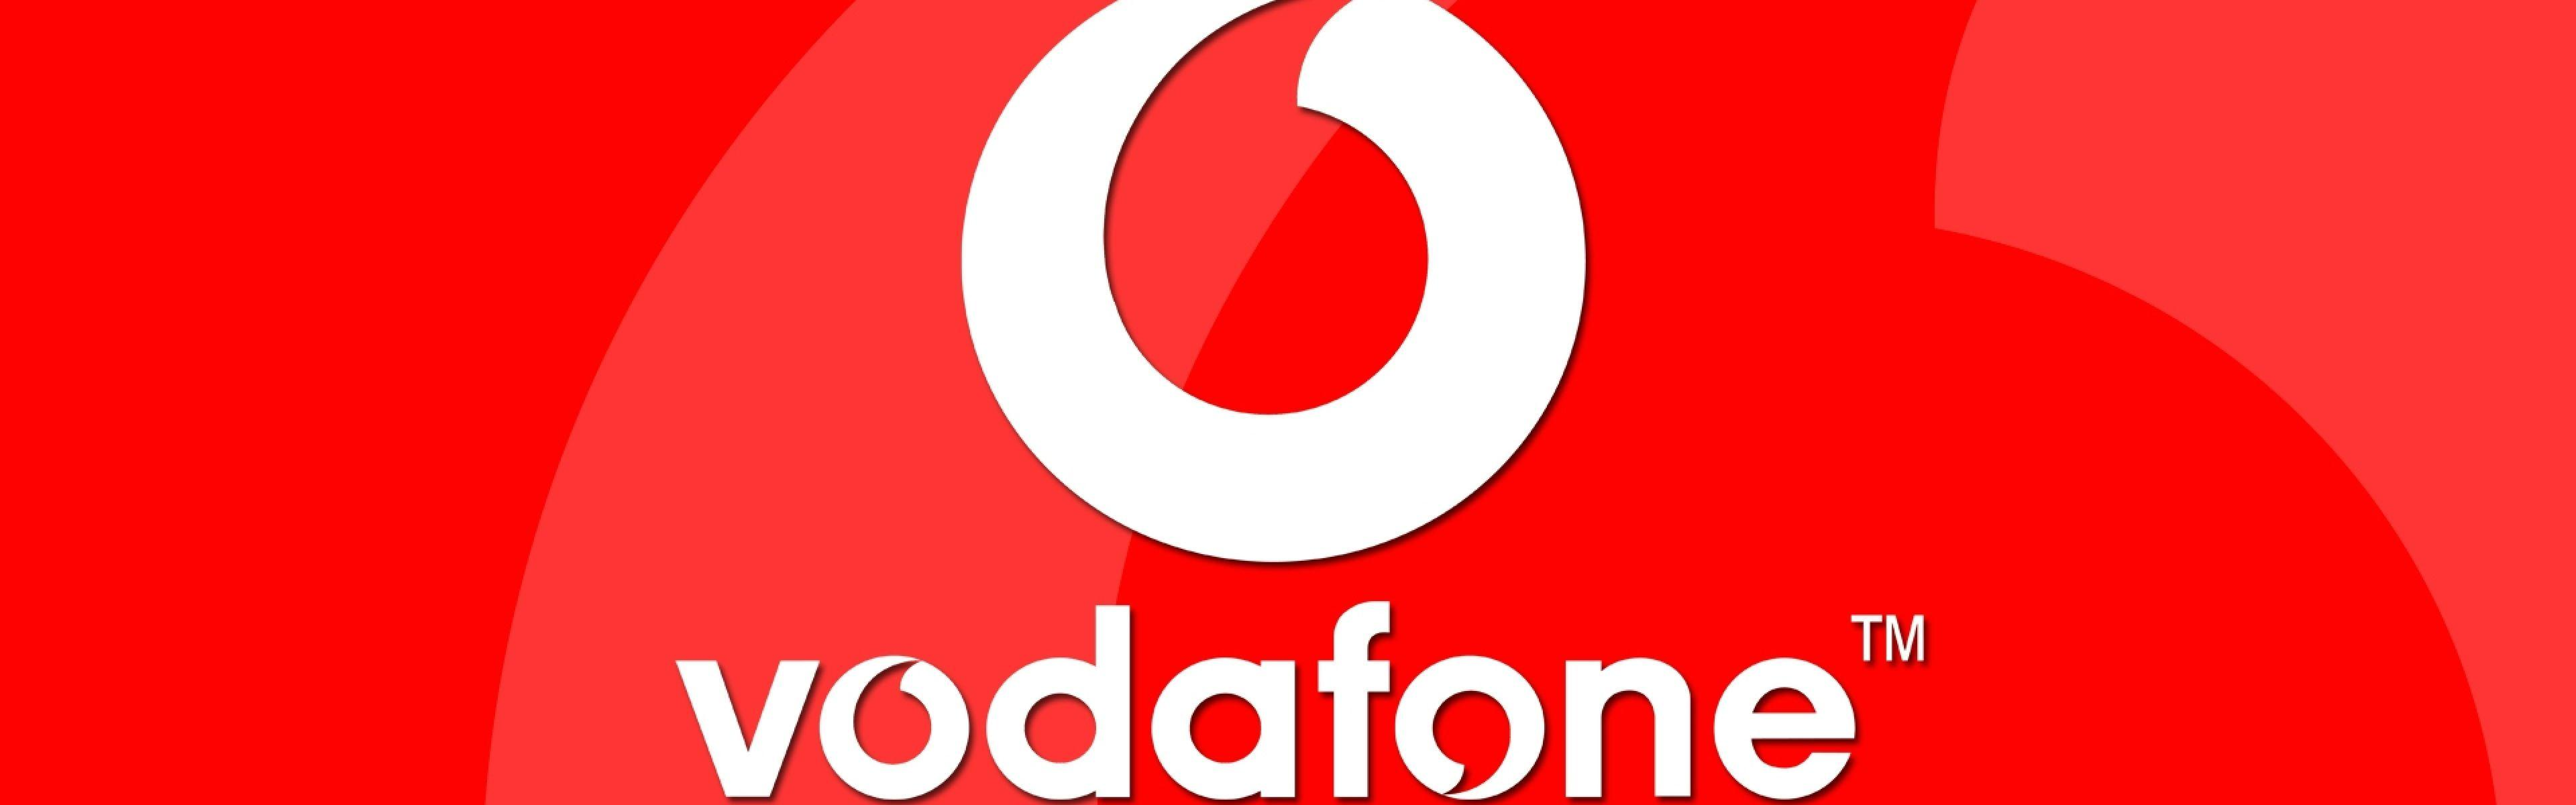 important stocks including vodafone - HD 3840×1200